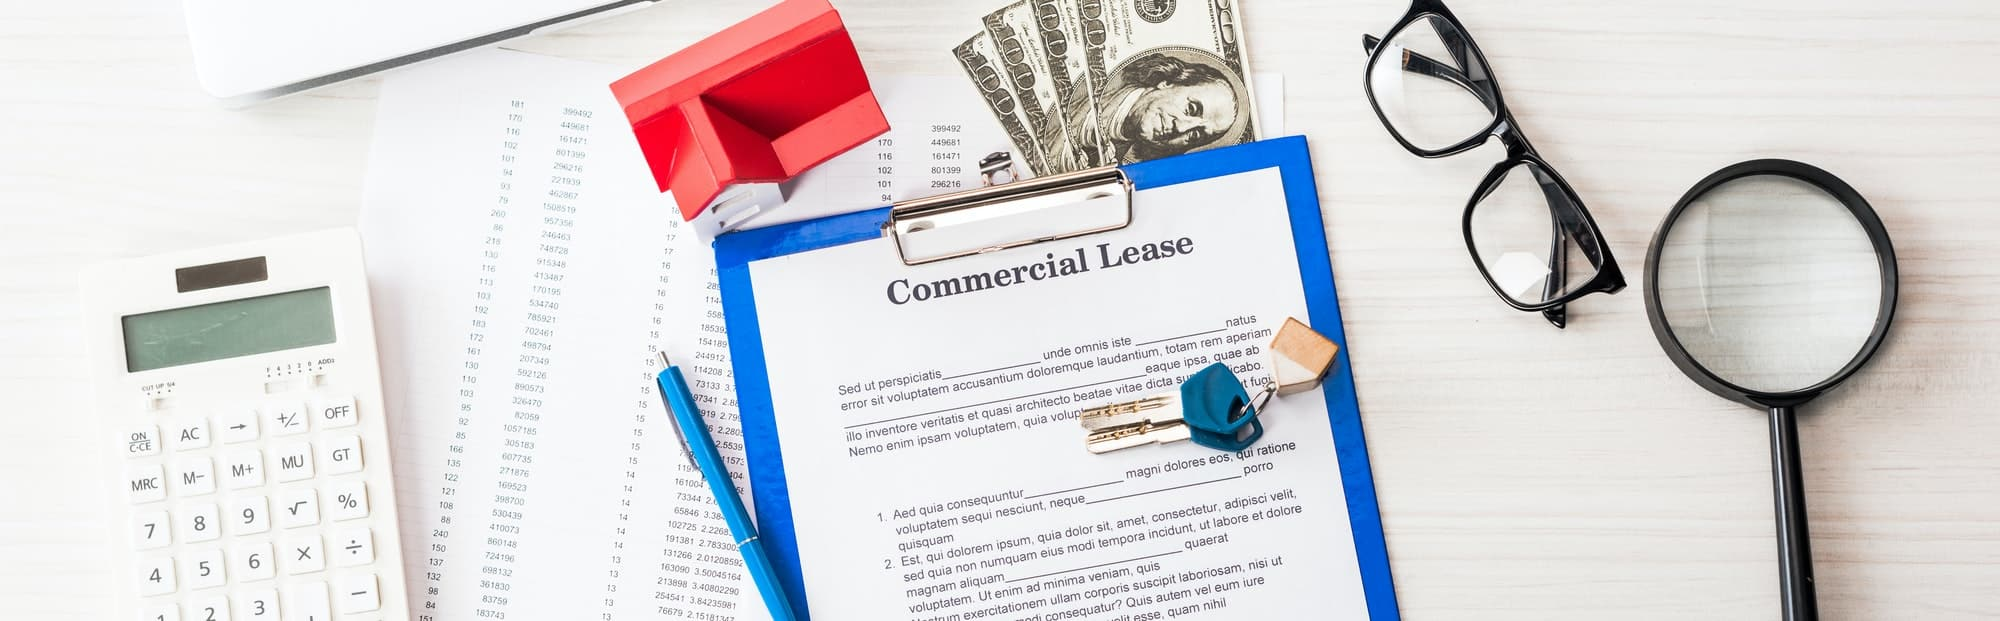 new leases in restaurant business sales